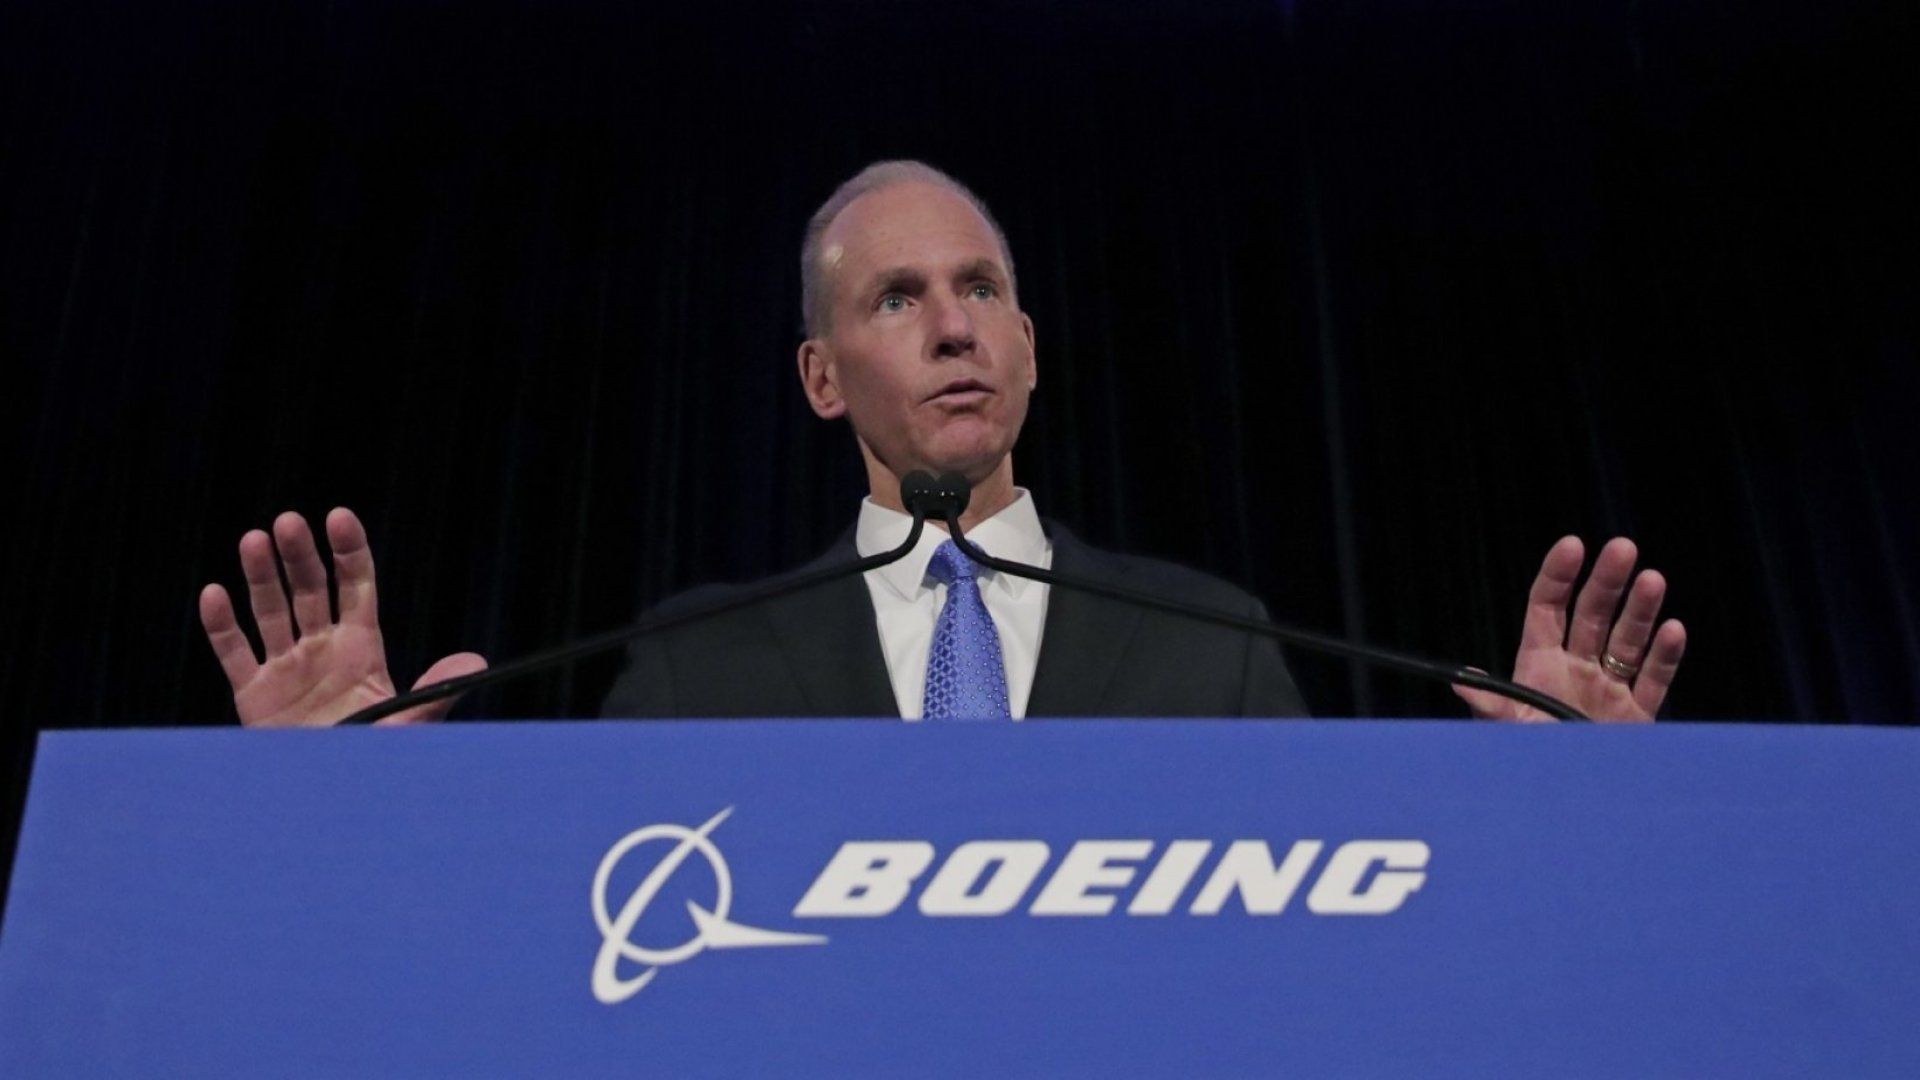 Boeing's CEO, Dennis Muilenburg, Is Out Over Failure to Contain the 737 Max Crisis